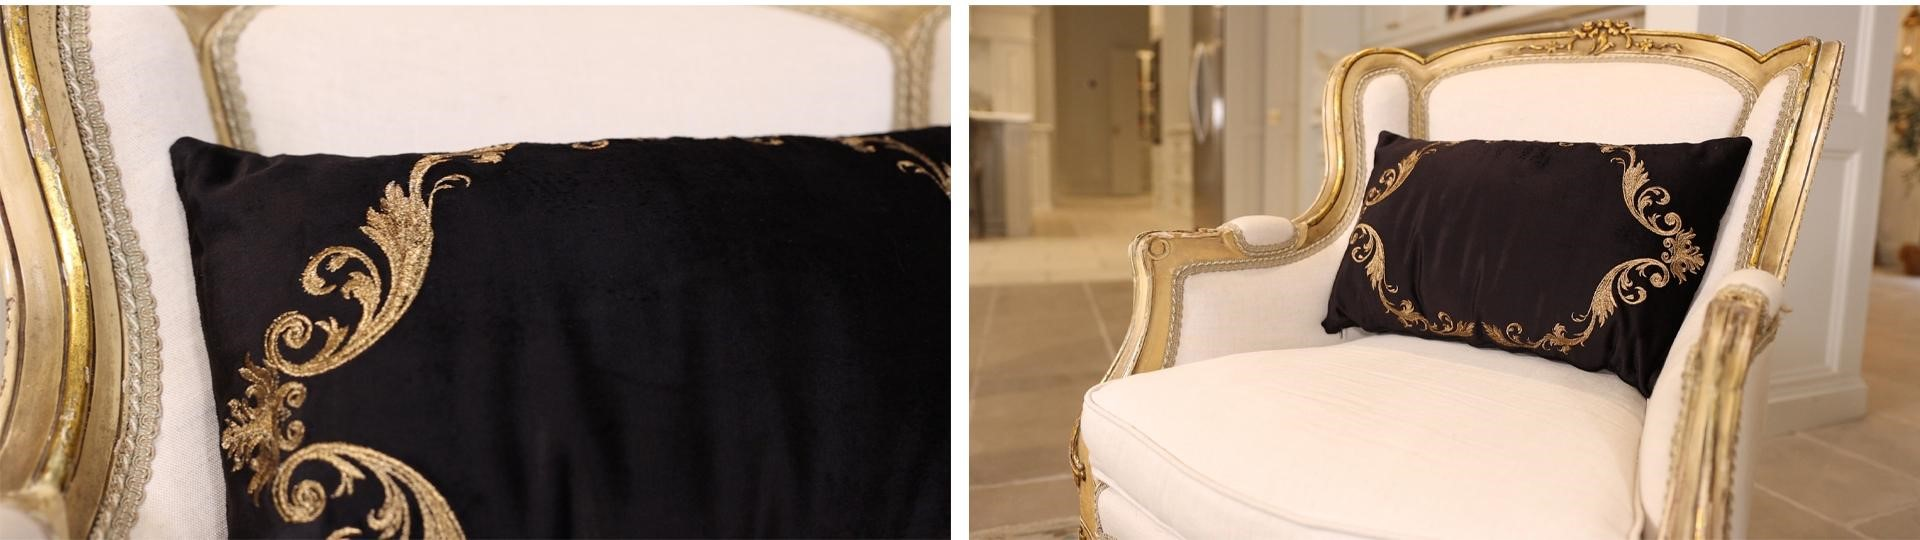 Black velvet and gold detailing french country decor throw pillow on a white and gold armchair